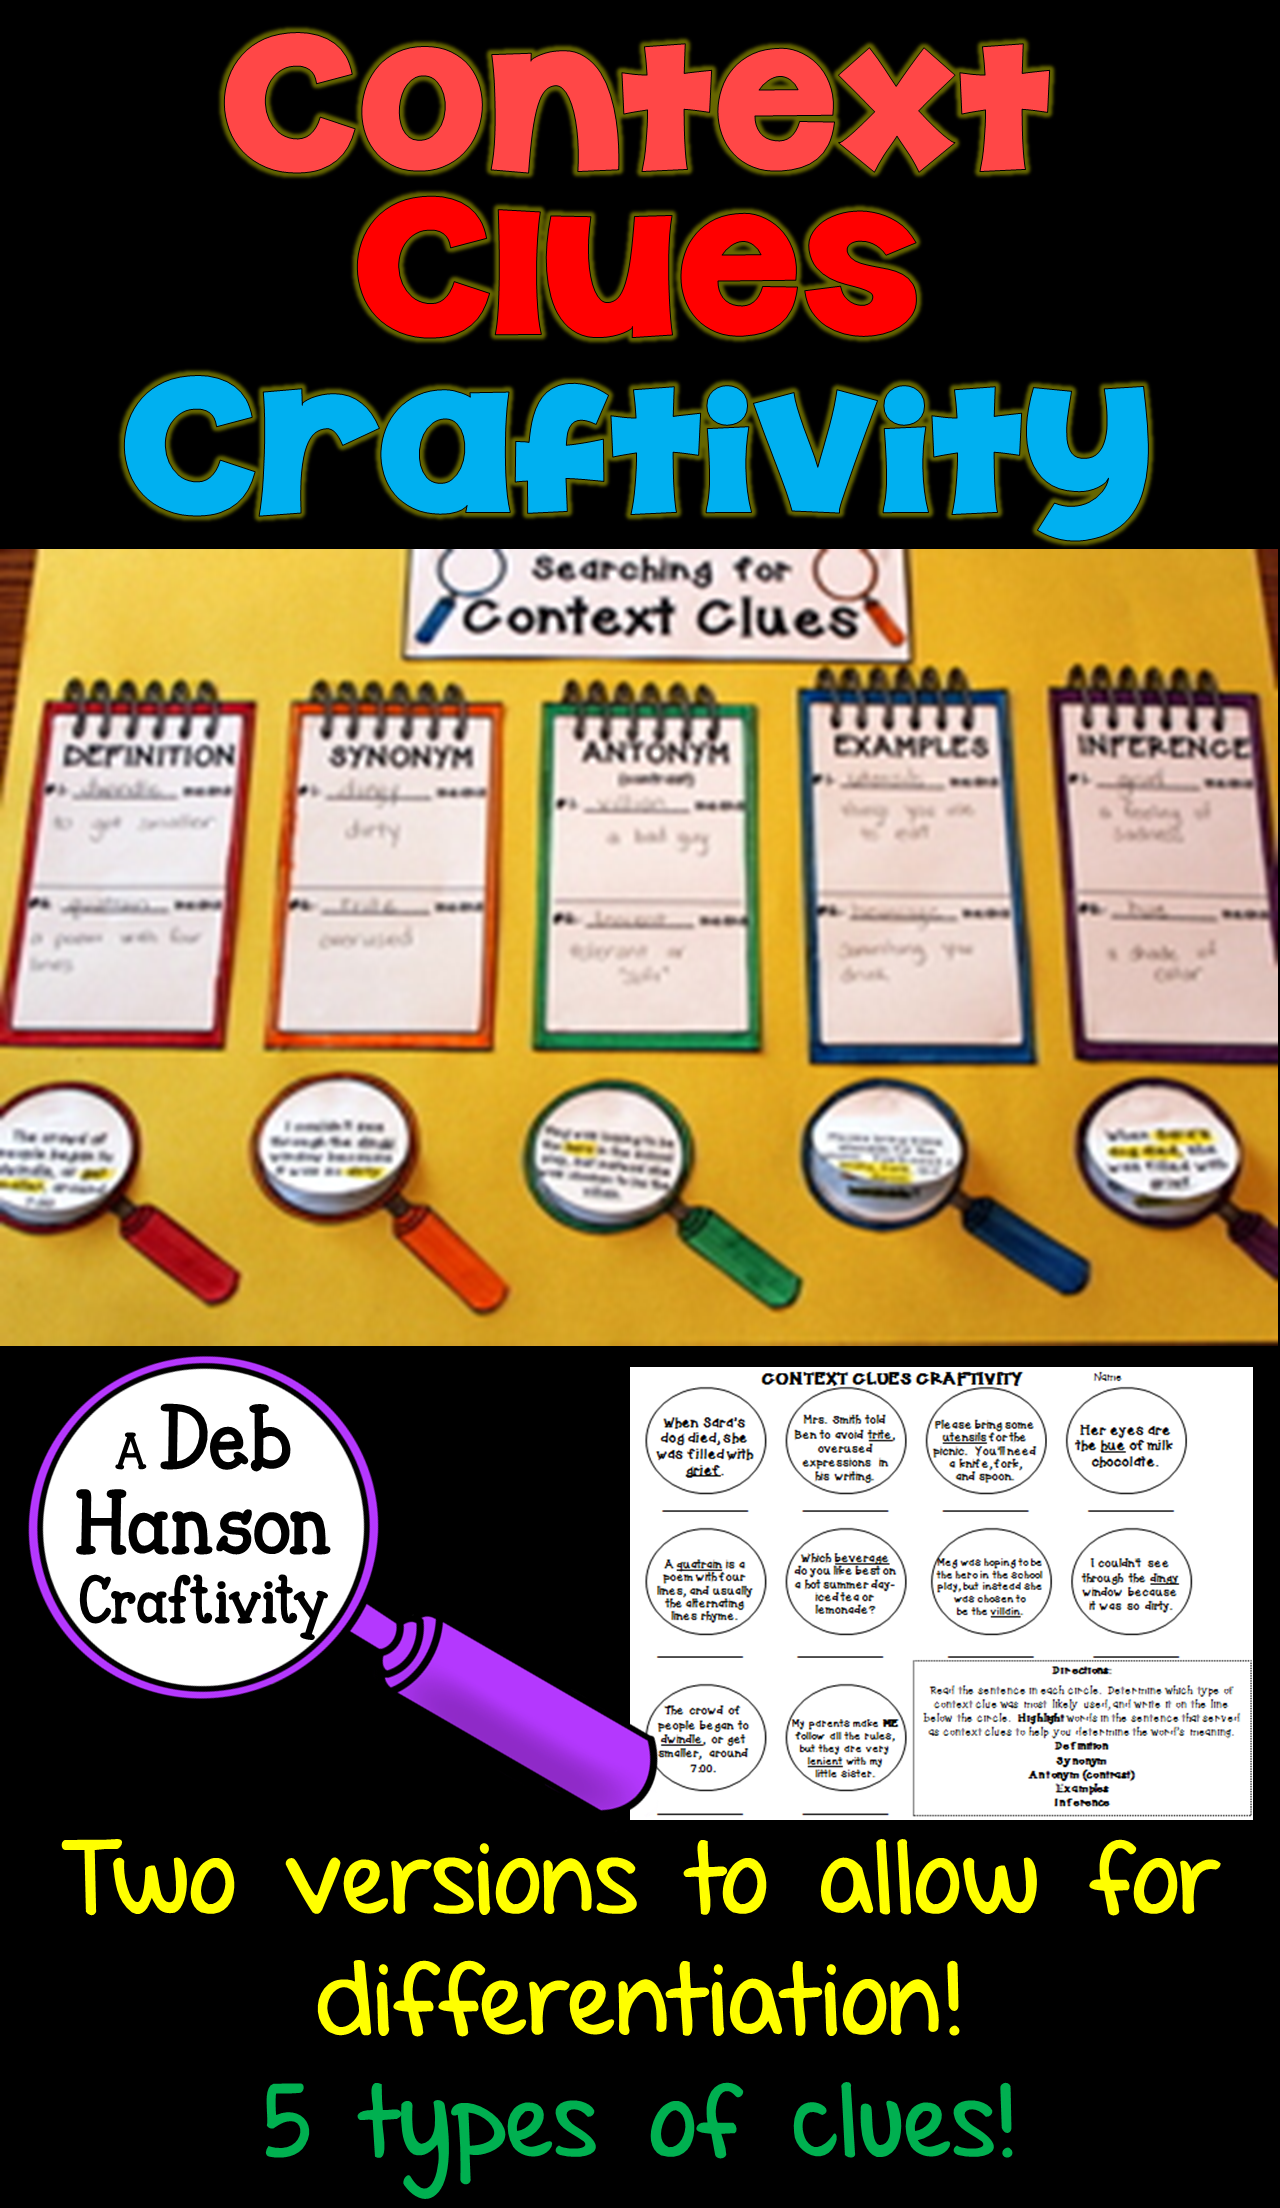 Context Clues Craftivity